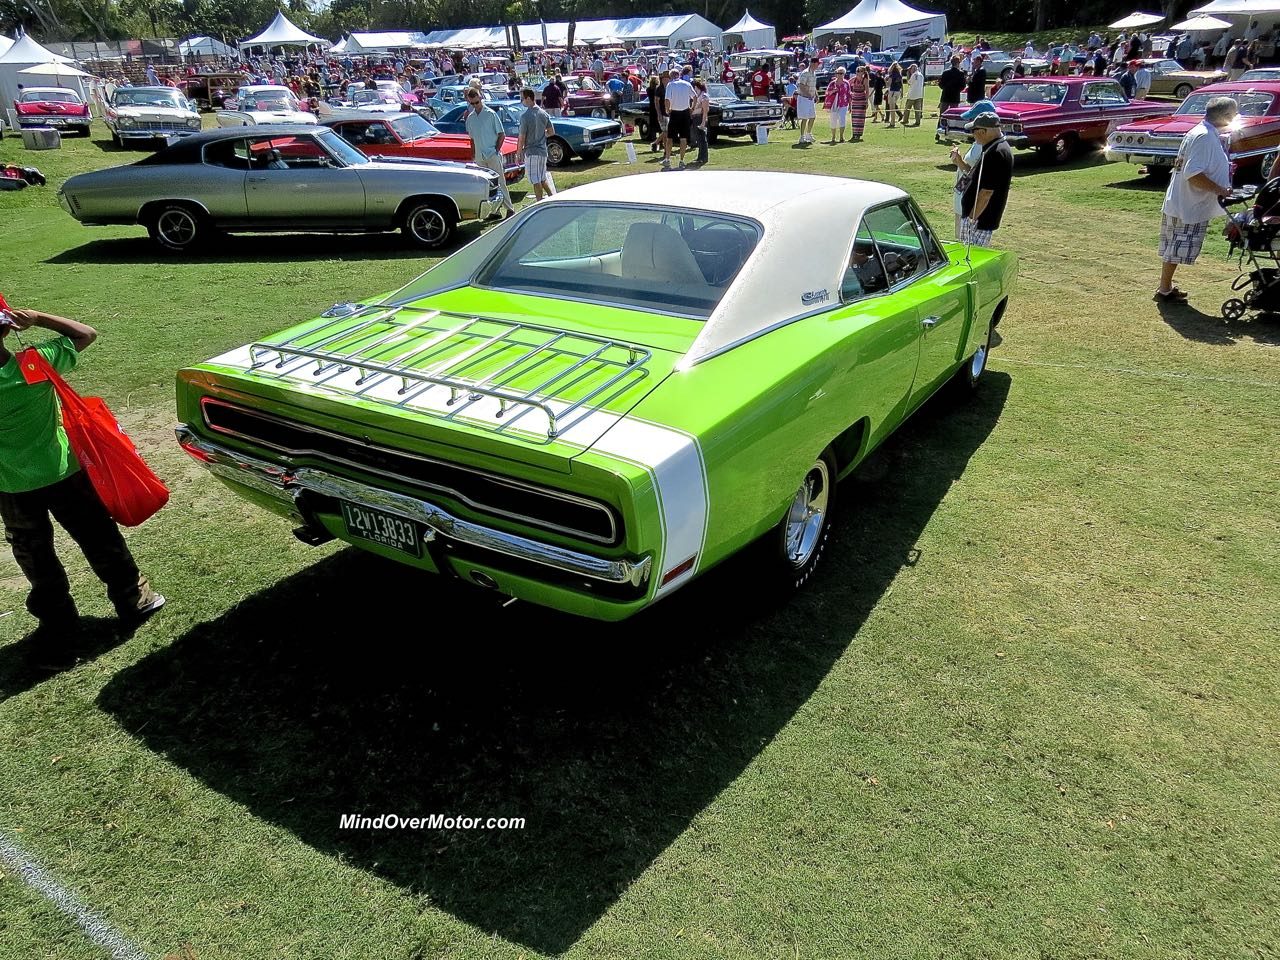 1970 Dodge Charger R:T Rear Angle 1